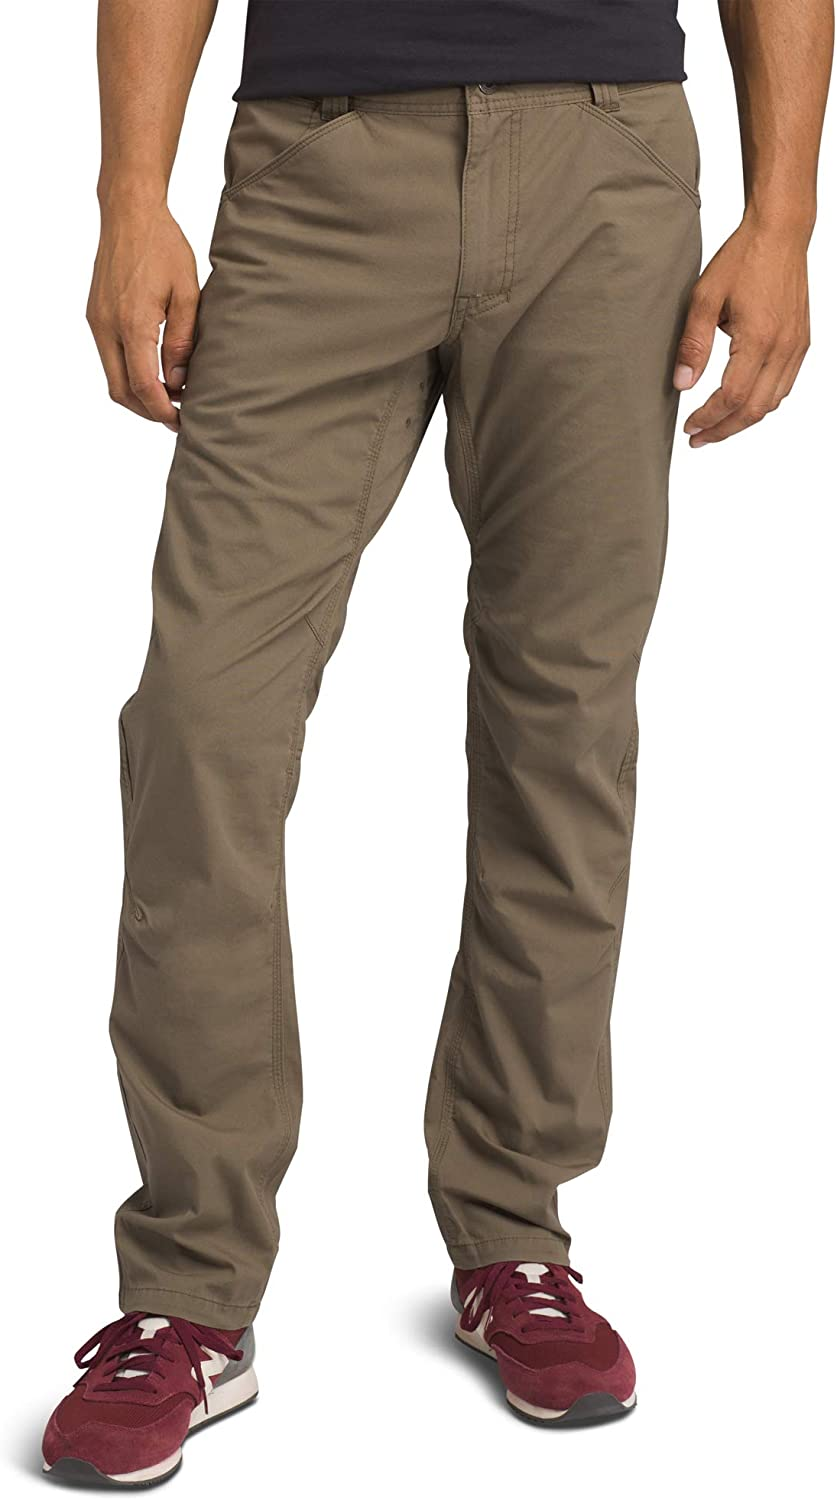 prAna Men's Santiago Super beauty product restock Limited time trial price quality top Slim Inseam 32